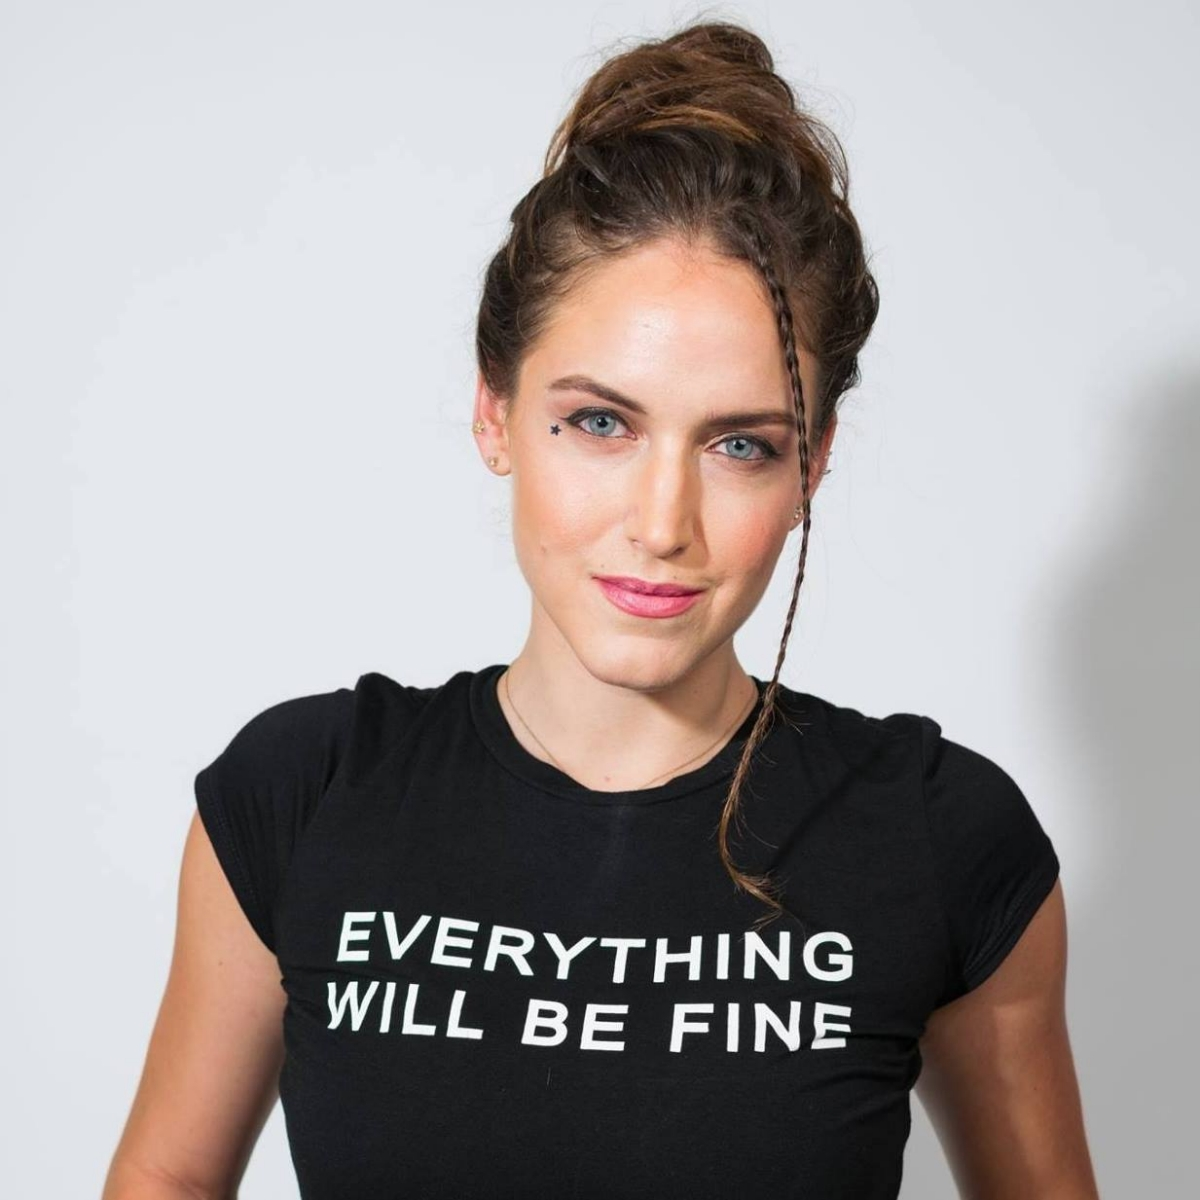 headshot Sophie LaBelle wearing black t-shirt that reads